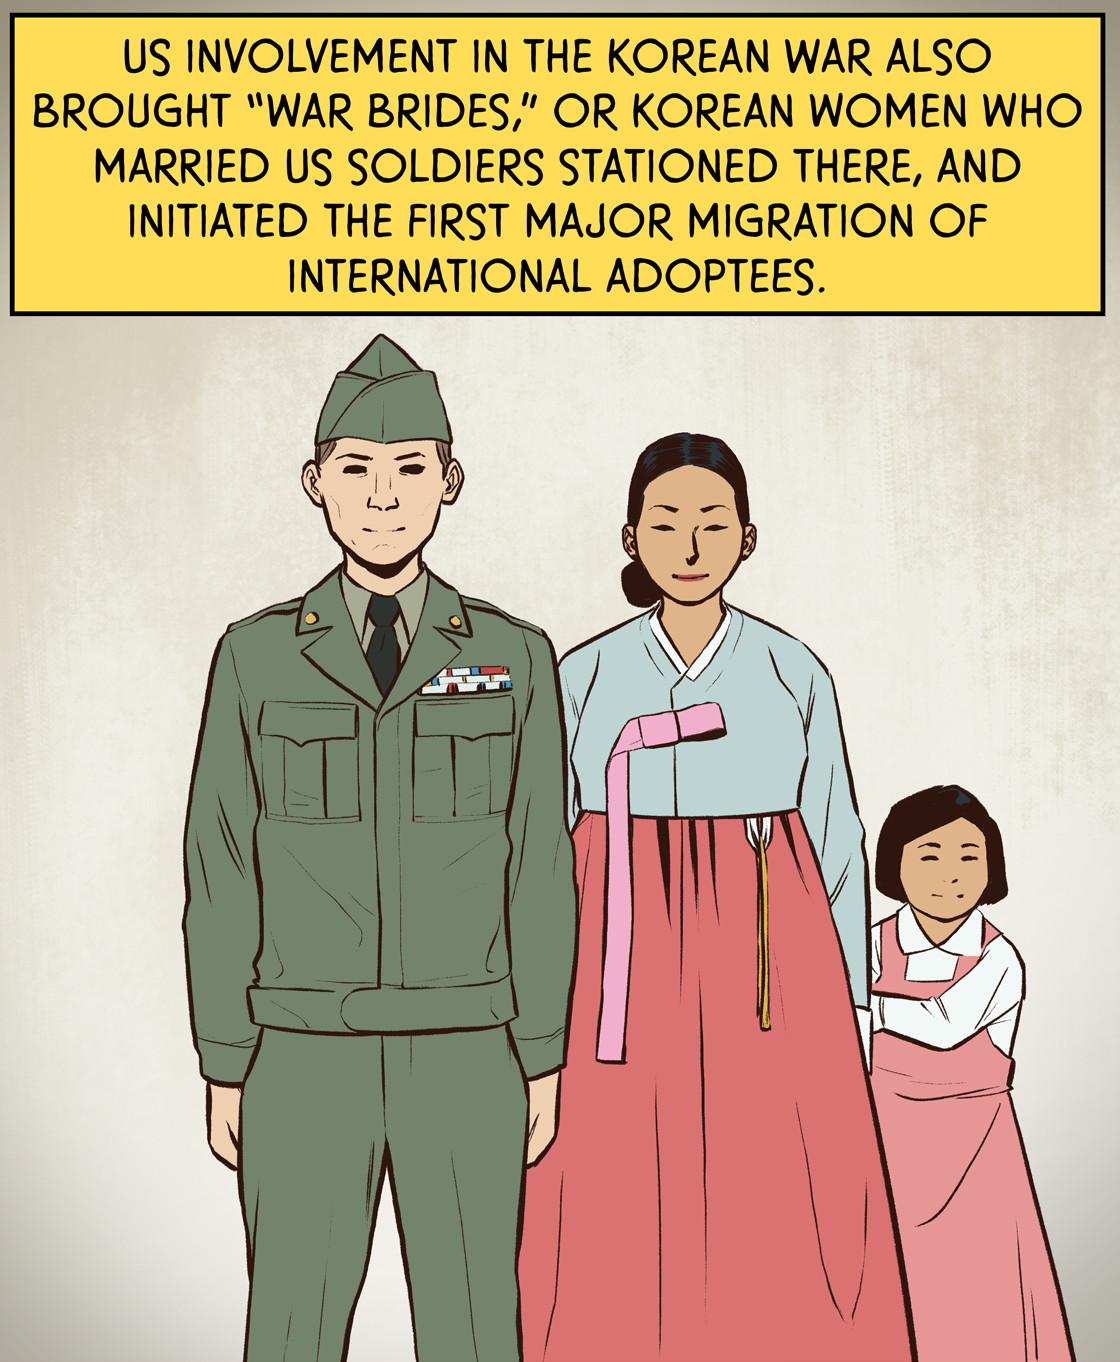 """U.S. involvement in the Korean War also brought """"war brides,"""" or Korean women who married US soldiers stationed there, and initiated the first major migration of international adoptees."""